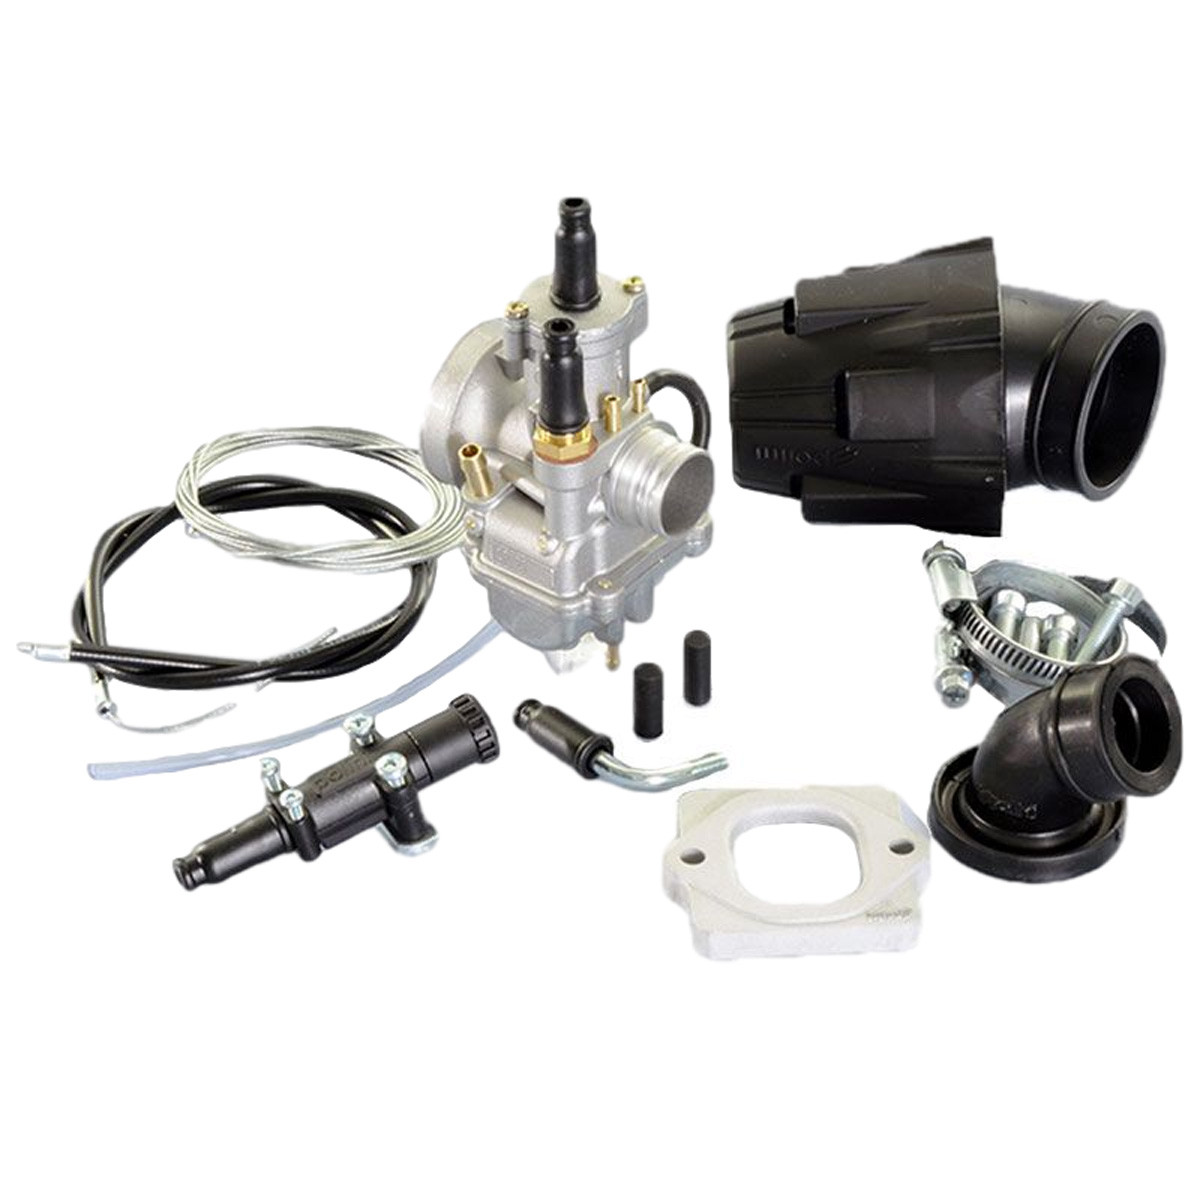 Kit Carburateur PIAGGIO Nrg, GILERA Stalker - POLINI CP 21mm